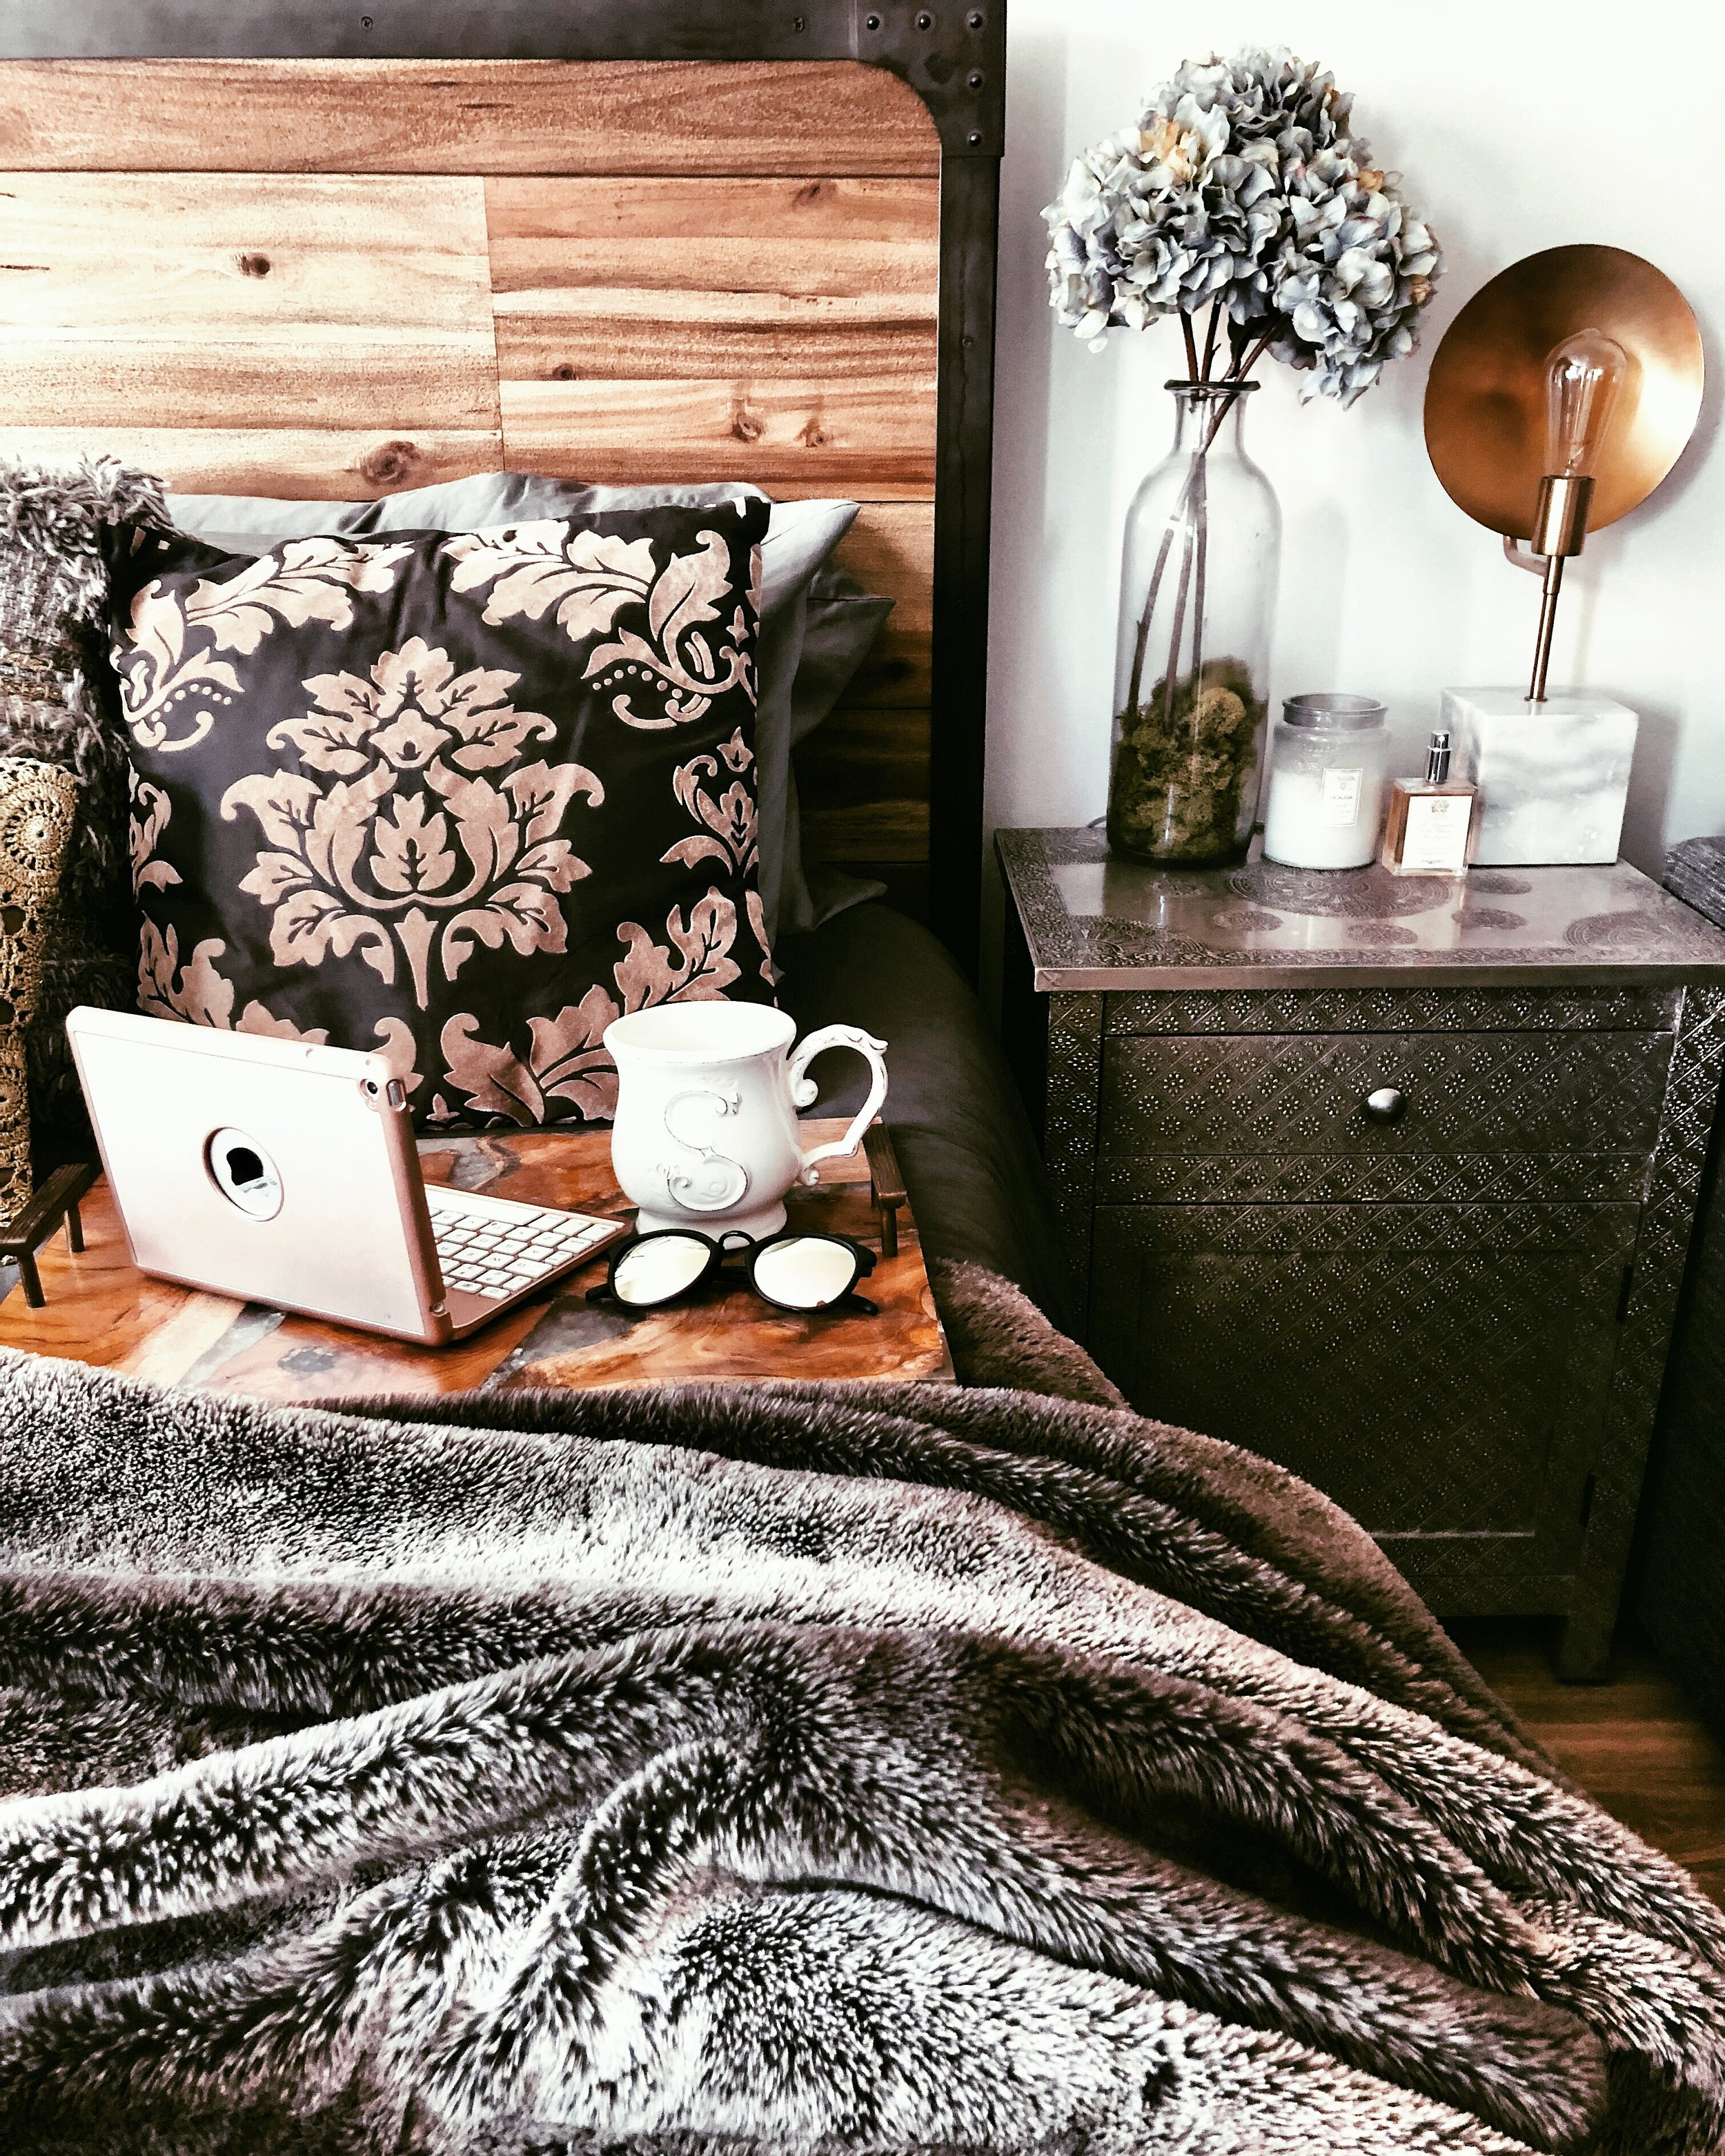 Cozy bedroom decor with rustic interior styling.